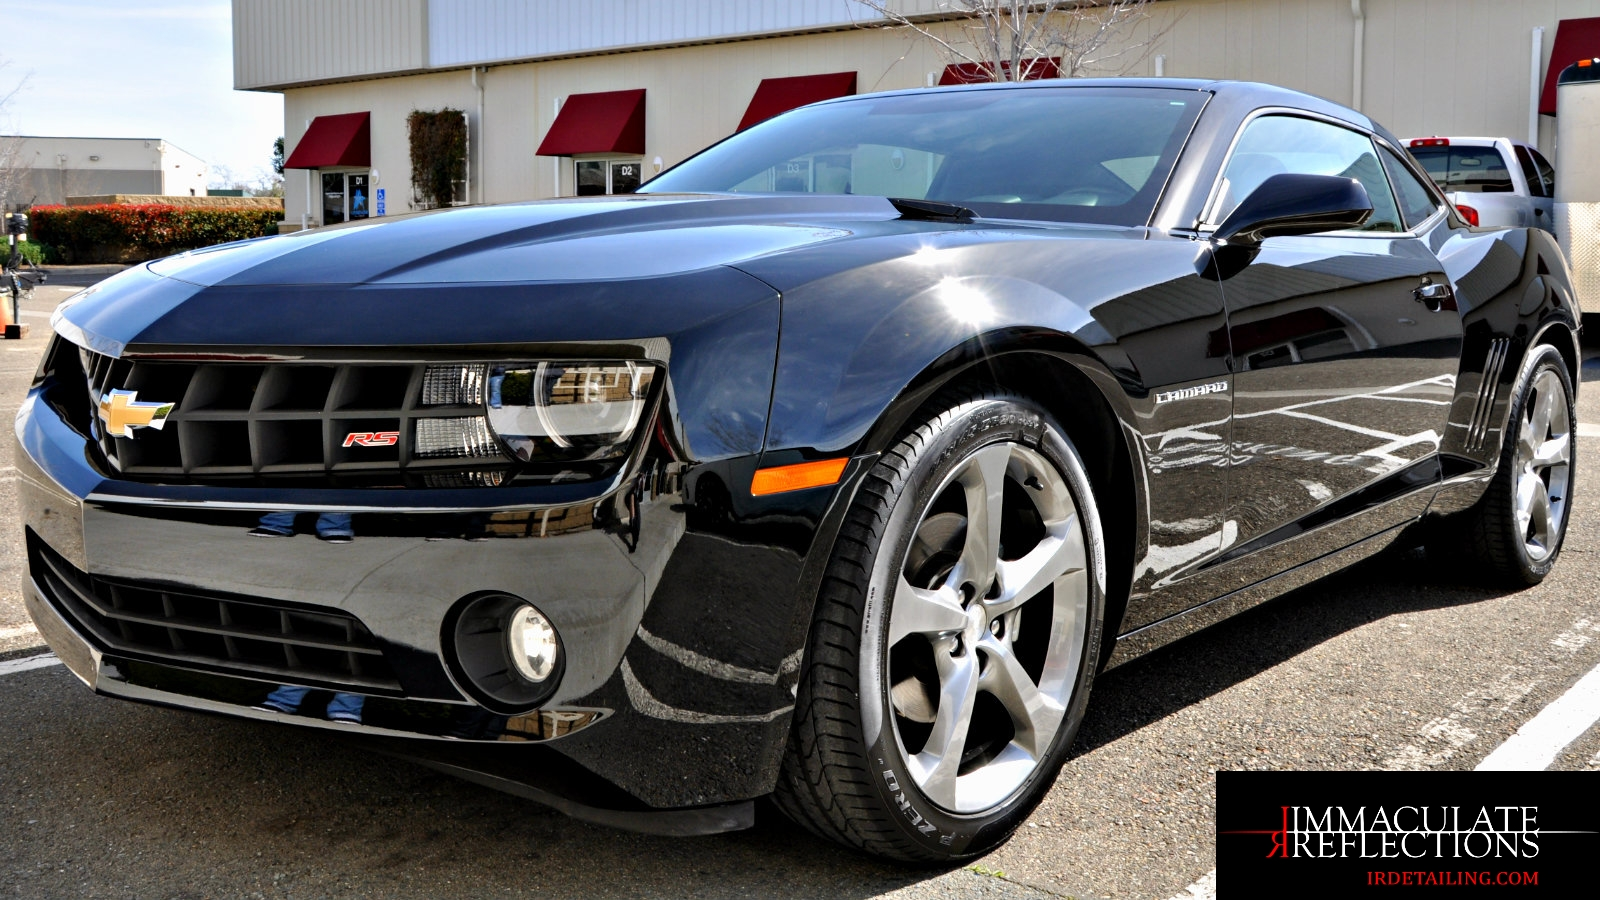 This Camaro sparkles like a polished onyx after Paint Correction & Pro Ceramic Nano Coating Detail Services by Immaculate Reflections.